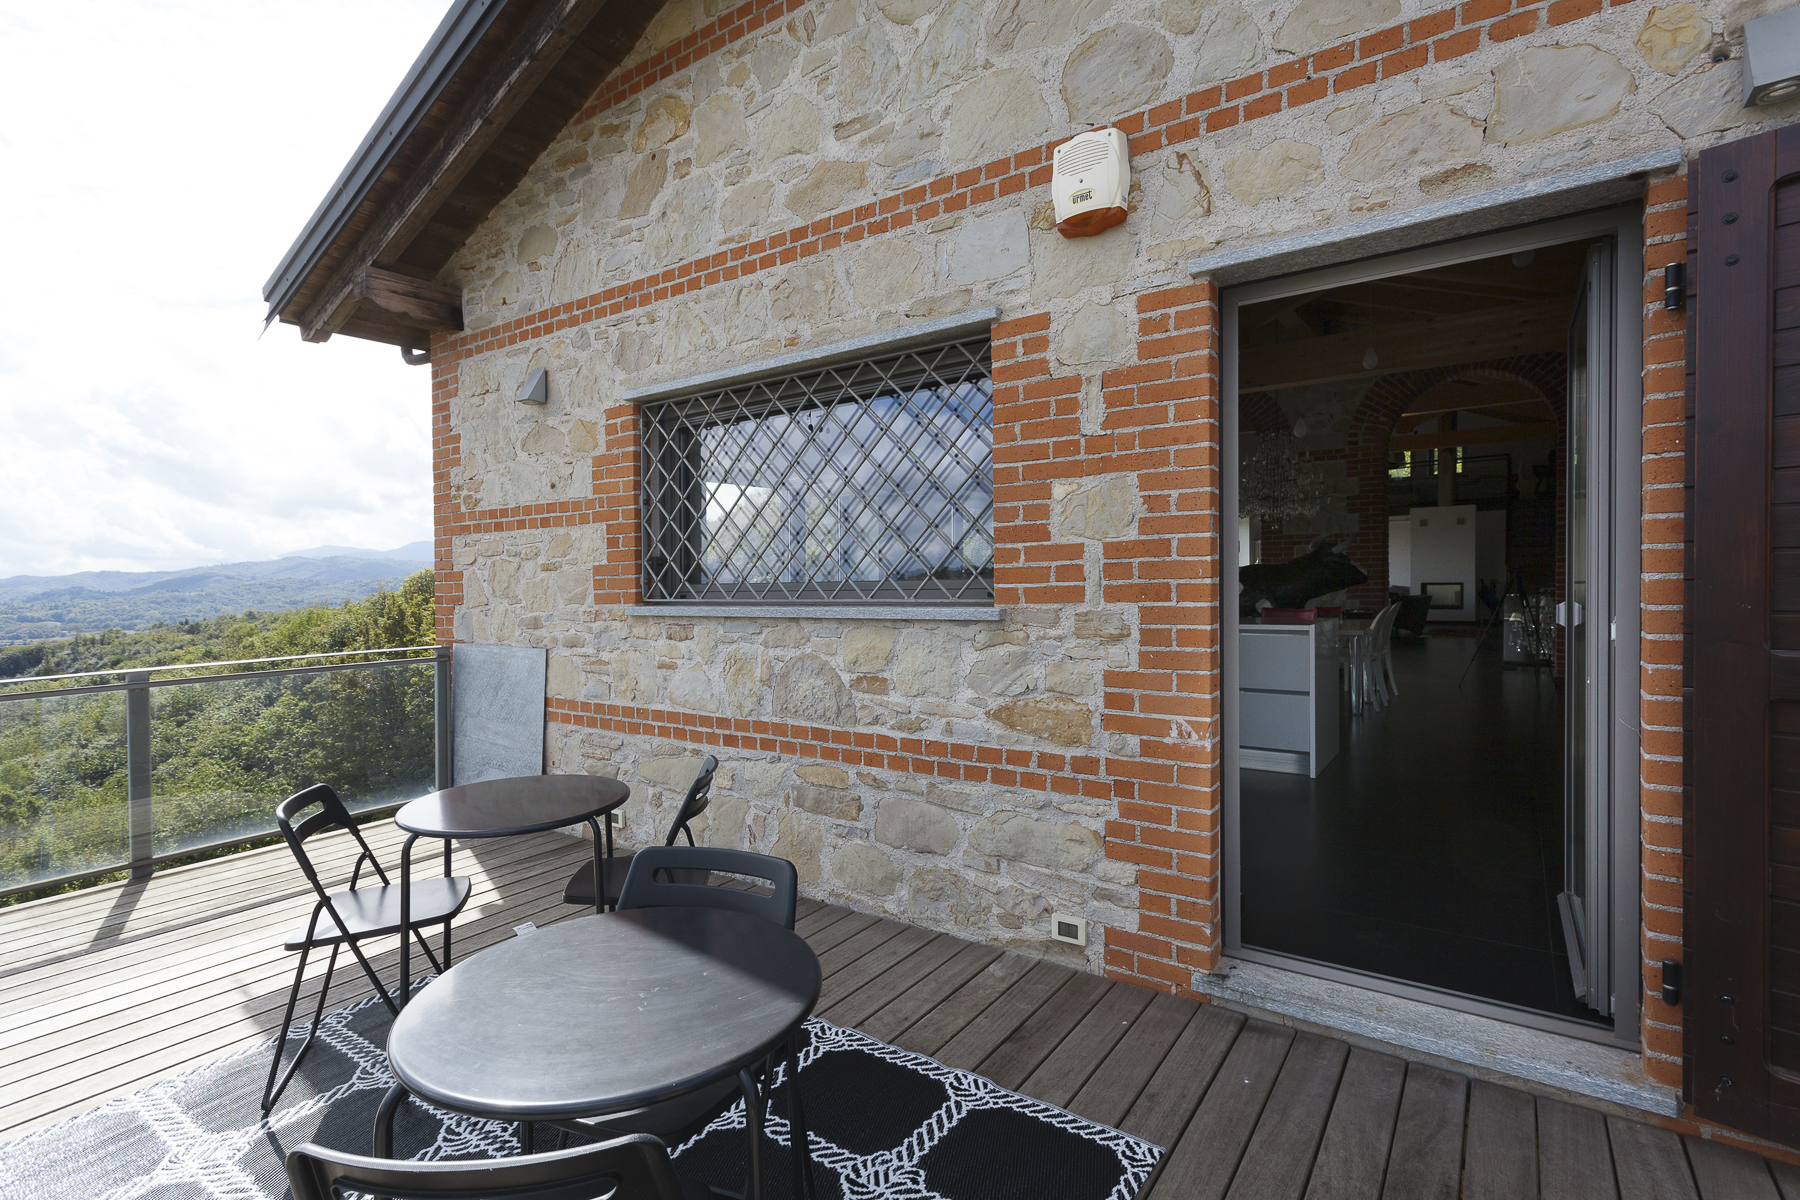 Additional photo for property listing at Country Home overlooking val Bormida Via Nazionale Other Savona, Savona 17017 Italia